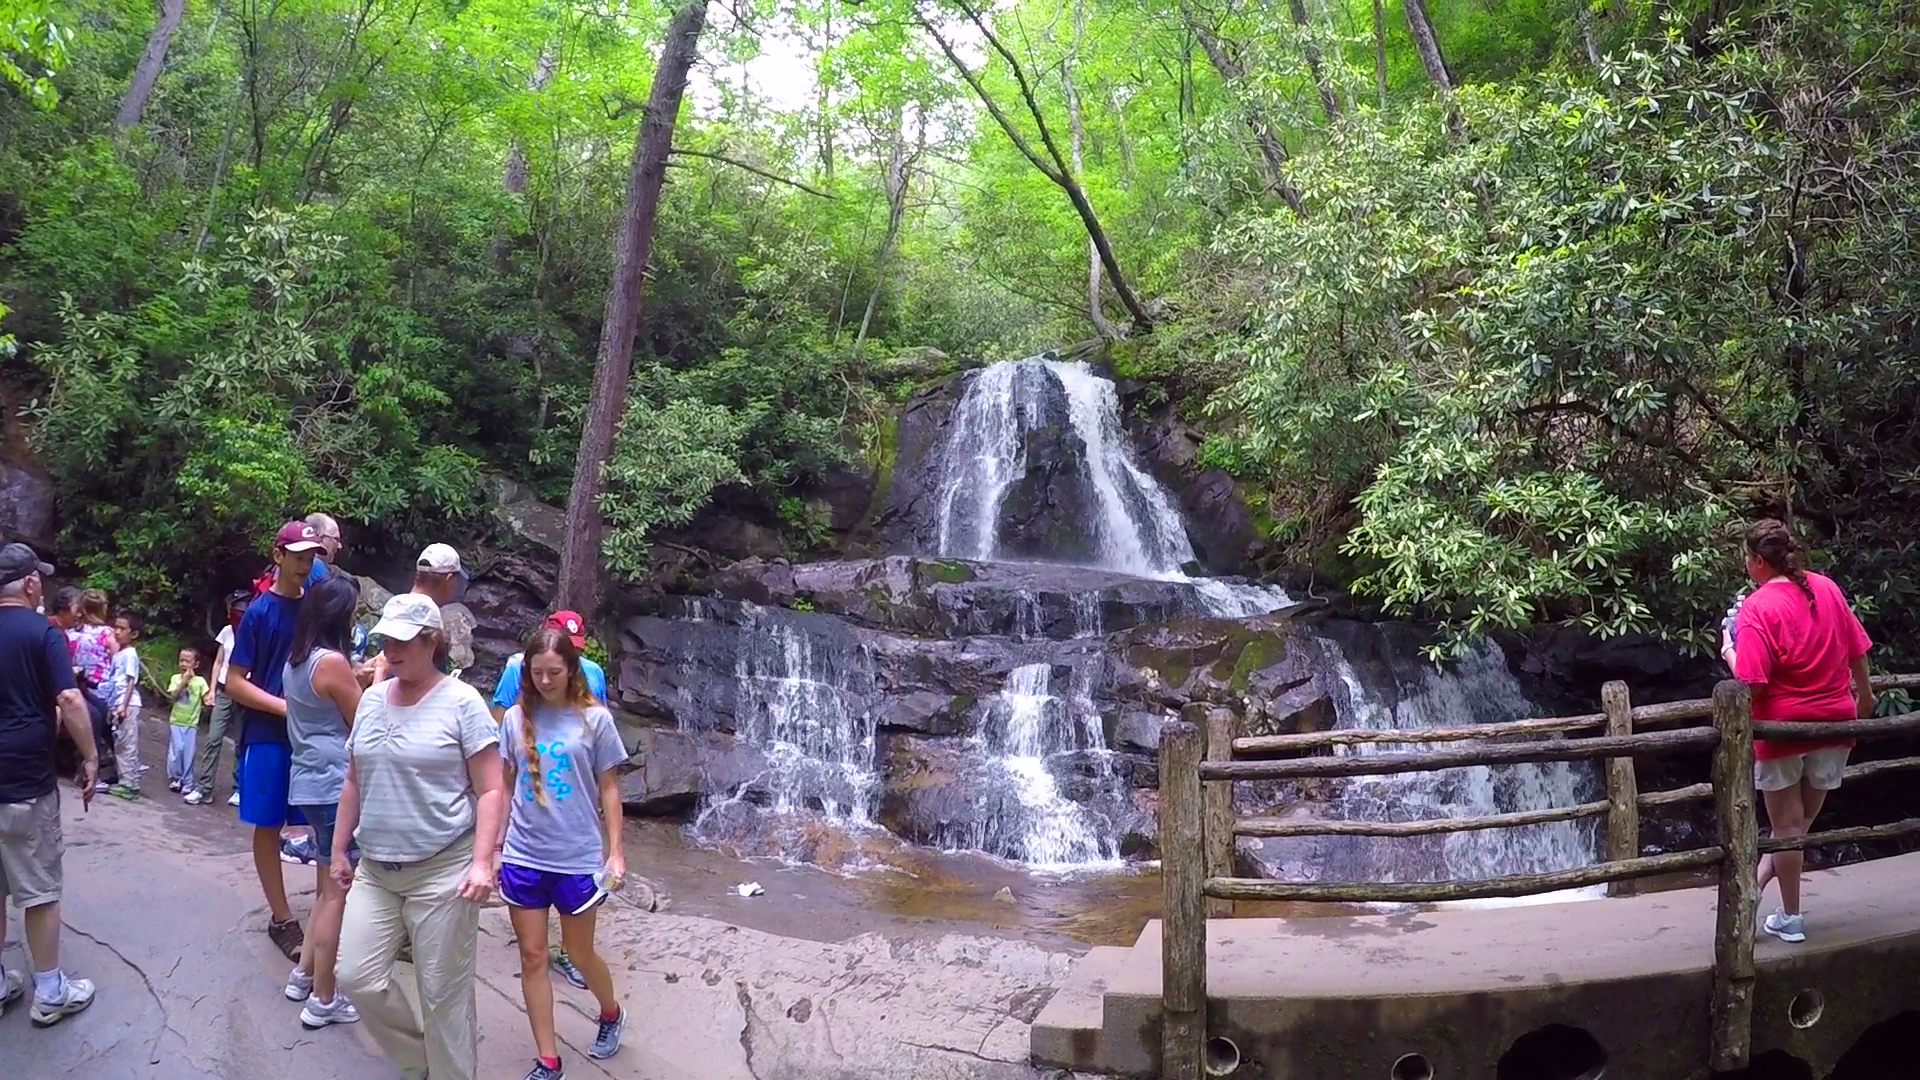 5 Smoky Mountain Trails That Are Perfect for Family HikesThe ... on allegheny mountain trail map, gsmnp trail map, mt cammerer trail map, cranberry mountain trail map, great smoky mountains north carolina map, rainbow mountain trail map, cape fear trail map, pigeon forge trail map, cat mountain trail map, yellow mountain trail map, great smoky mountains topo map, gatlinburg trail map, mountains to sea trail nc map, smoky mountains best trails, elkmont little river trail map, cold mountain nc trail map, smoky mountains kephart, wolverine trail map, squaw mountain trail map, smoky mountains appalachian trail through,